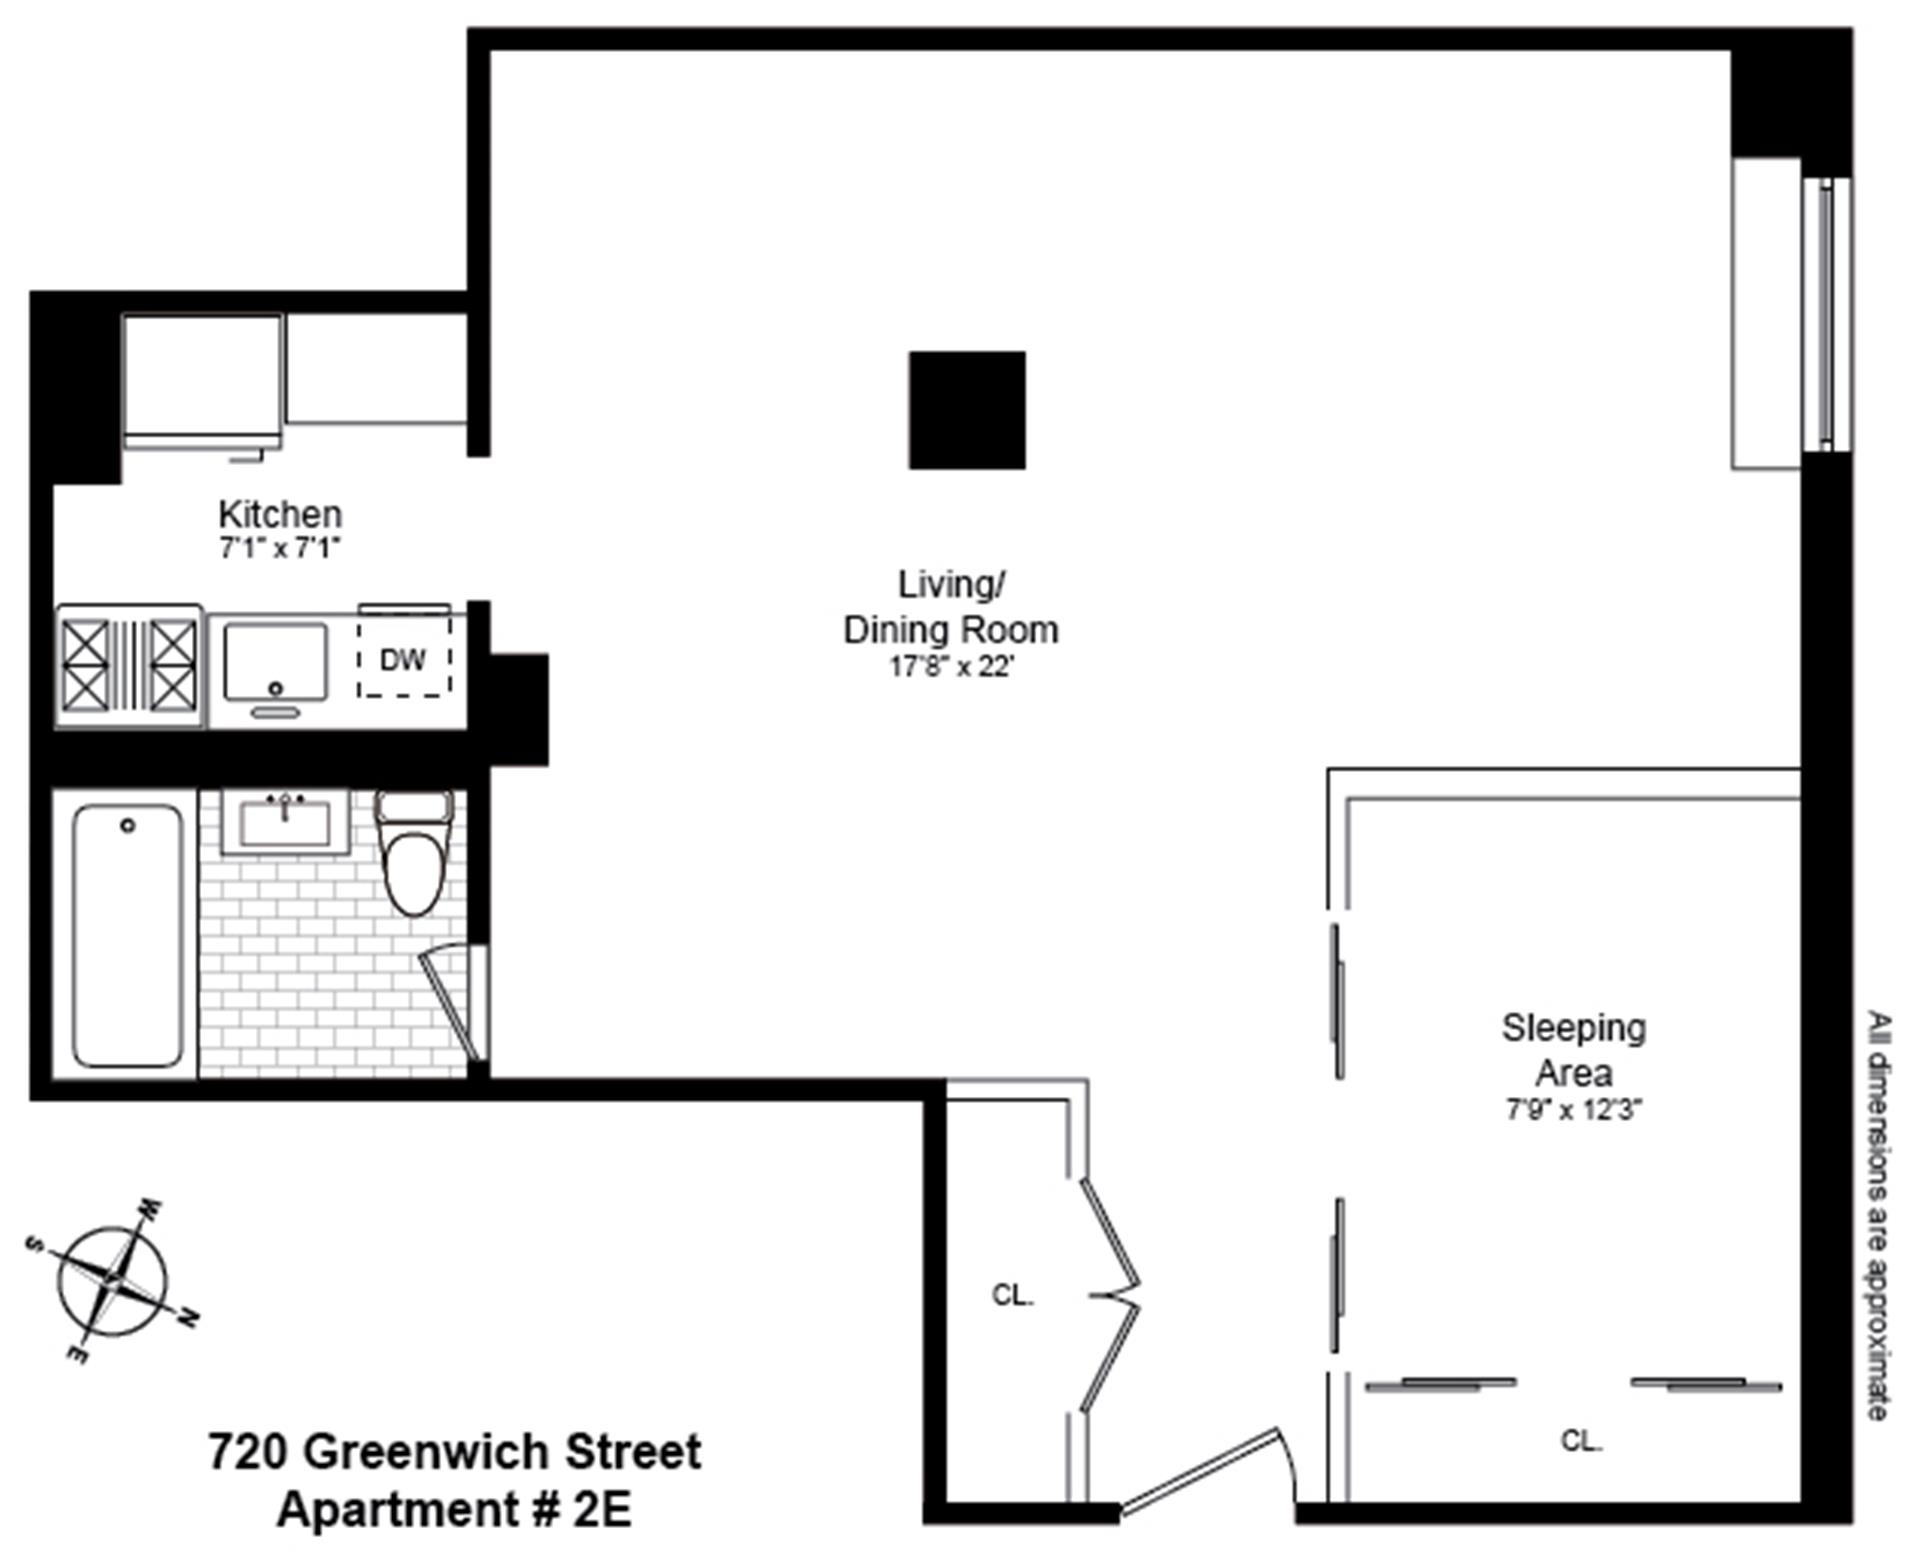 Floor plan of 720 Greenwich St, 2E - West Village - Meatpacking District, New York